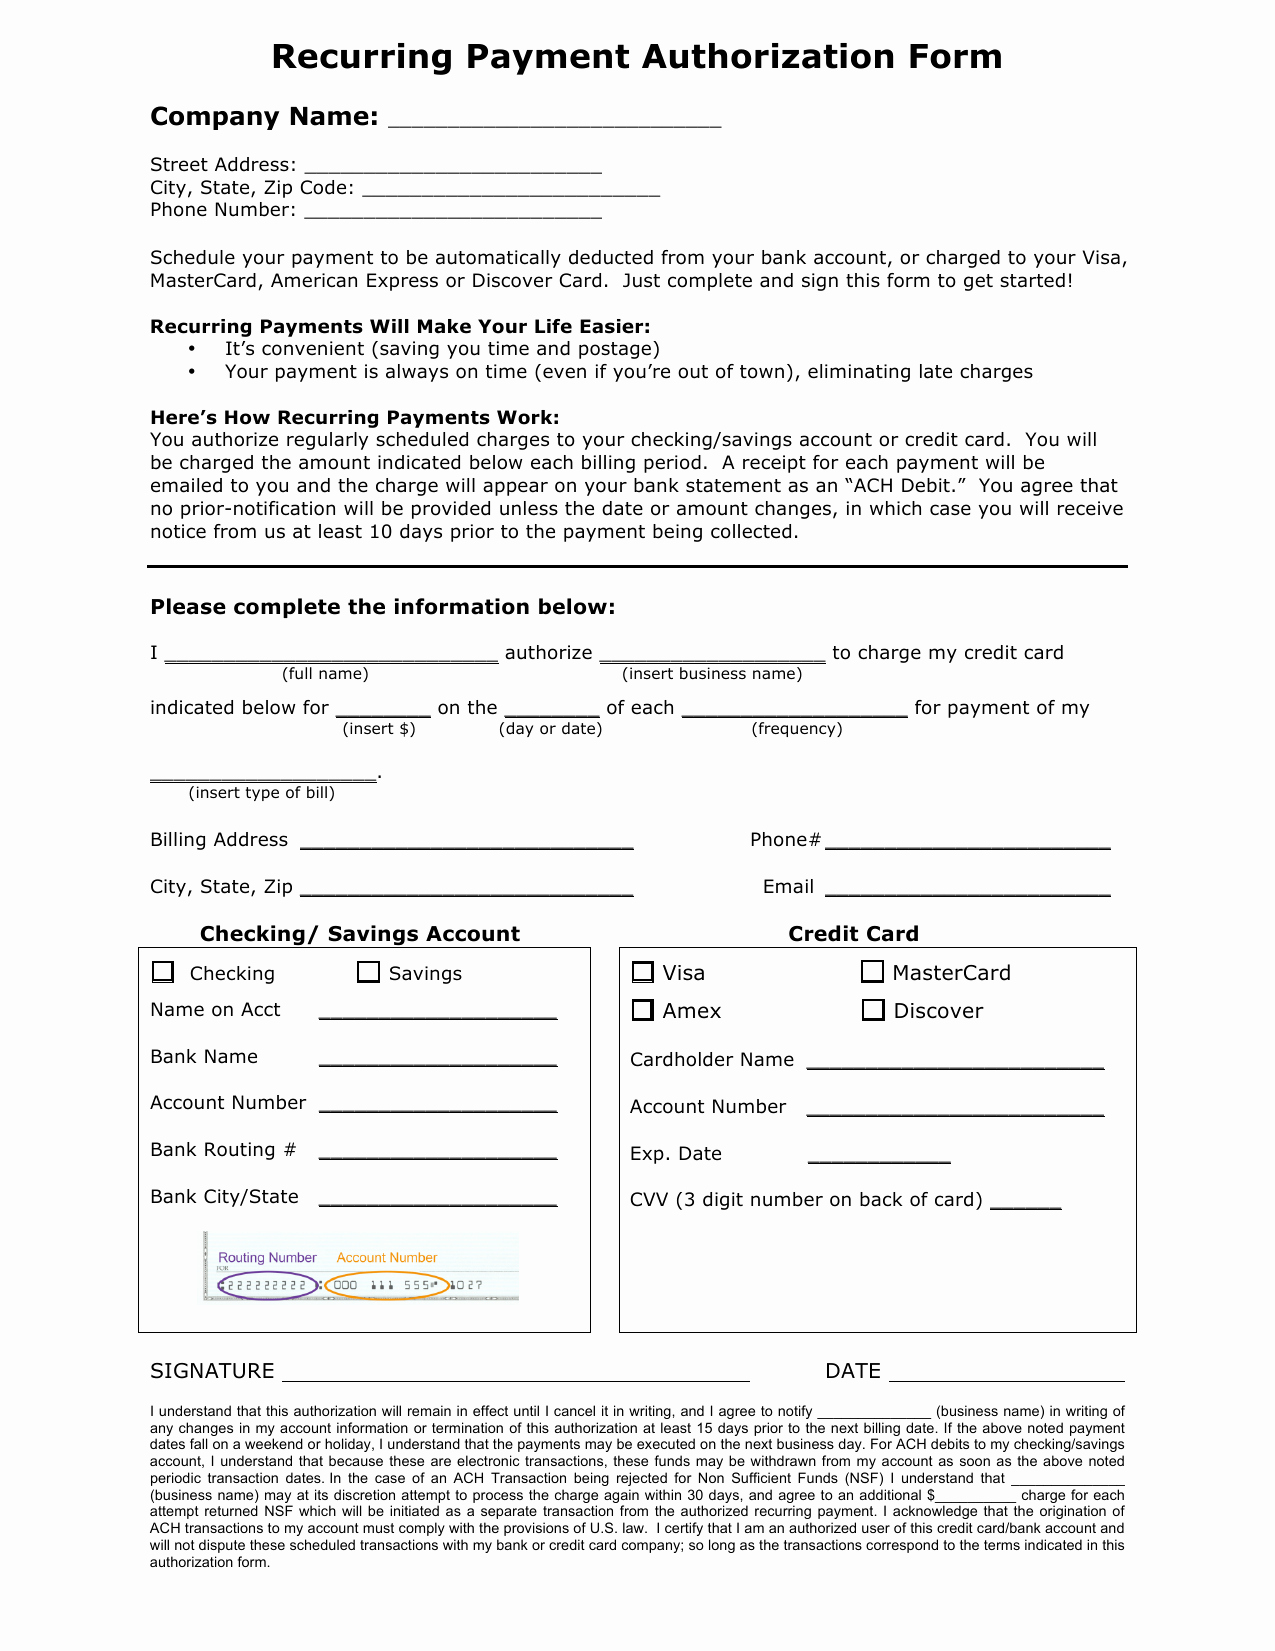 Credit Report Authorization form Template Best Of Download Recurring Payment Authorization form Template